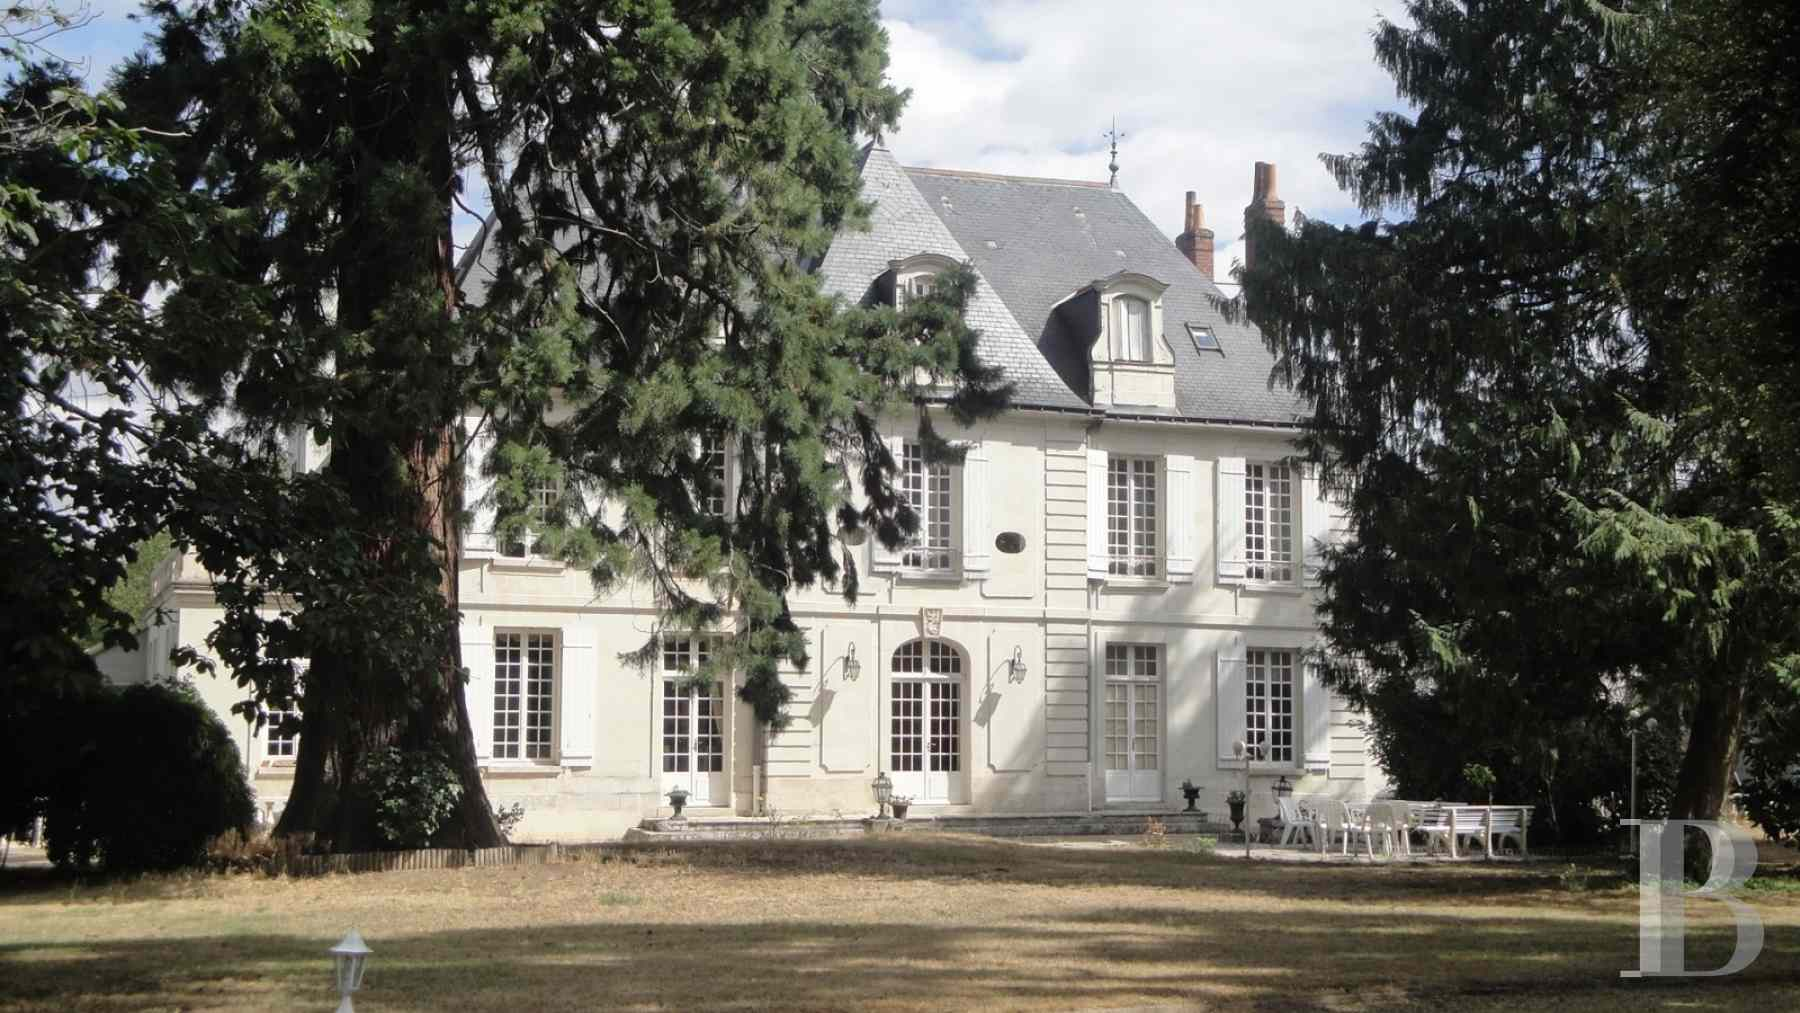 property for sale France center val de loire large luxurious - 1 zoom